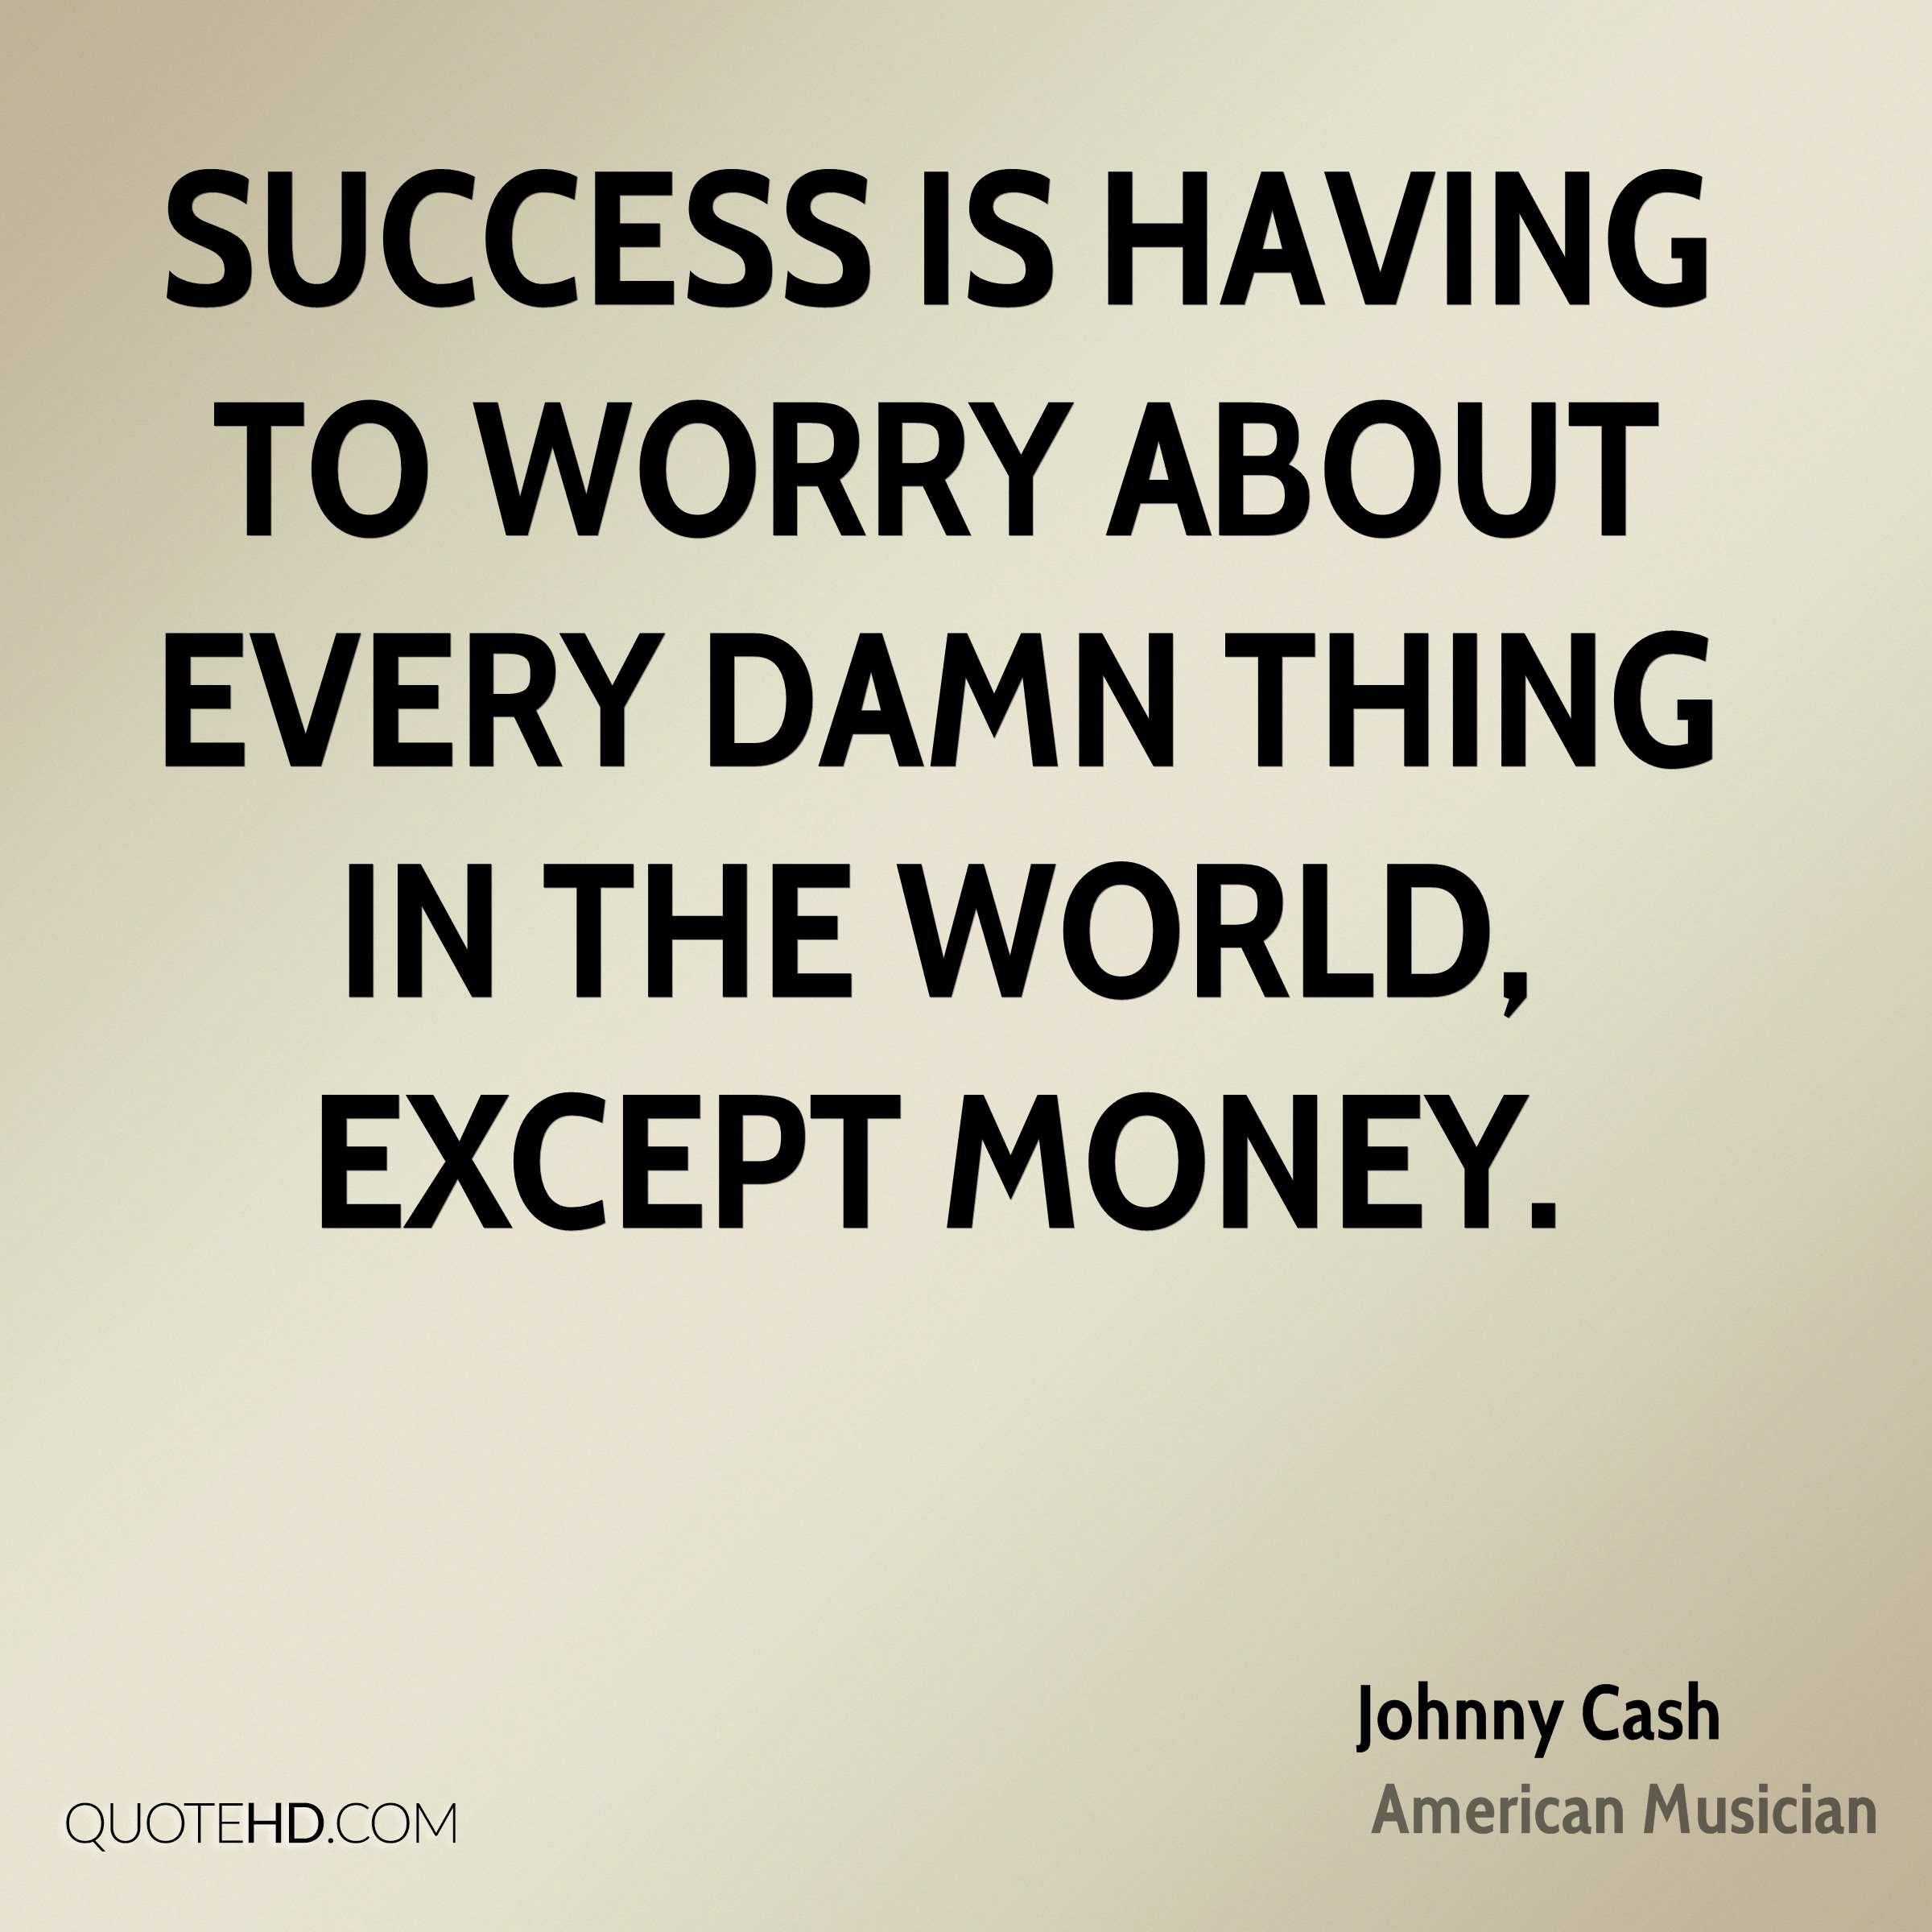 Success is having to worry about every damn thing in the world, except money.